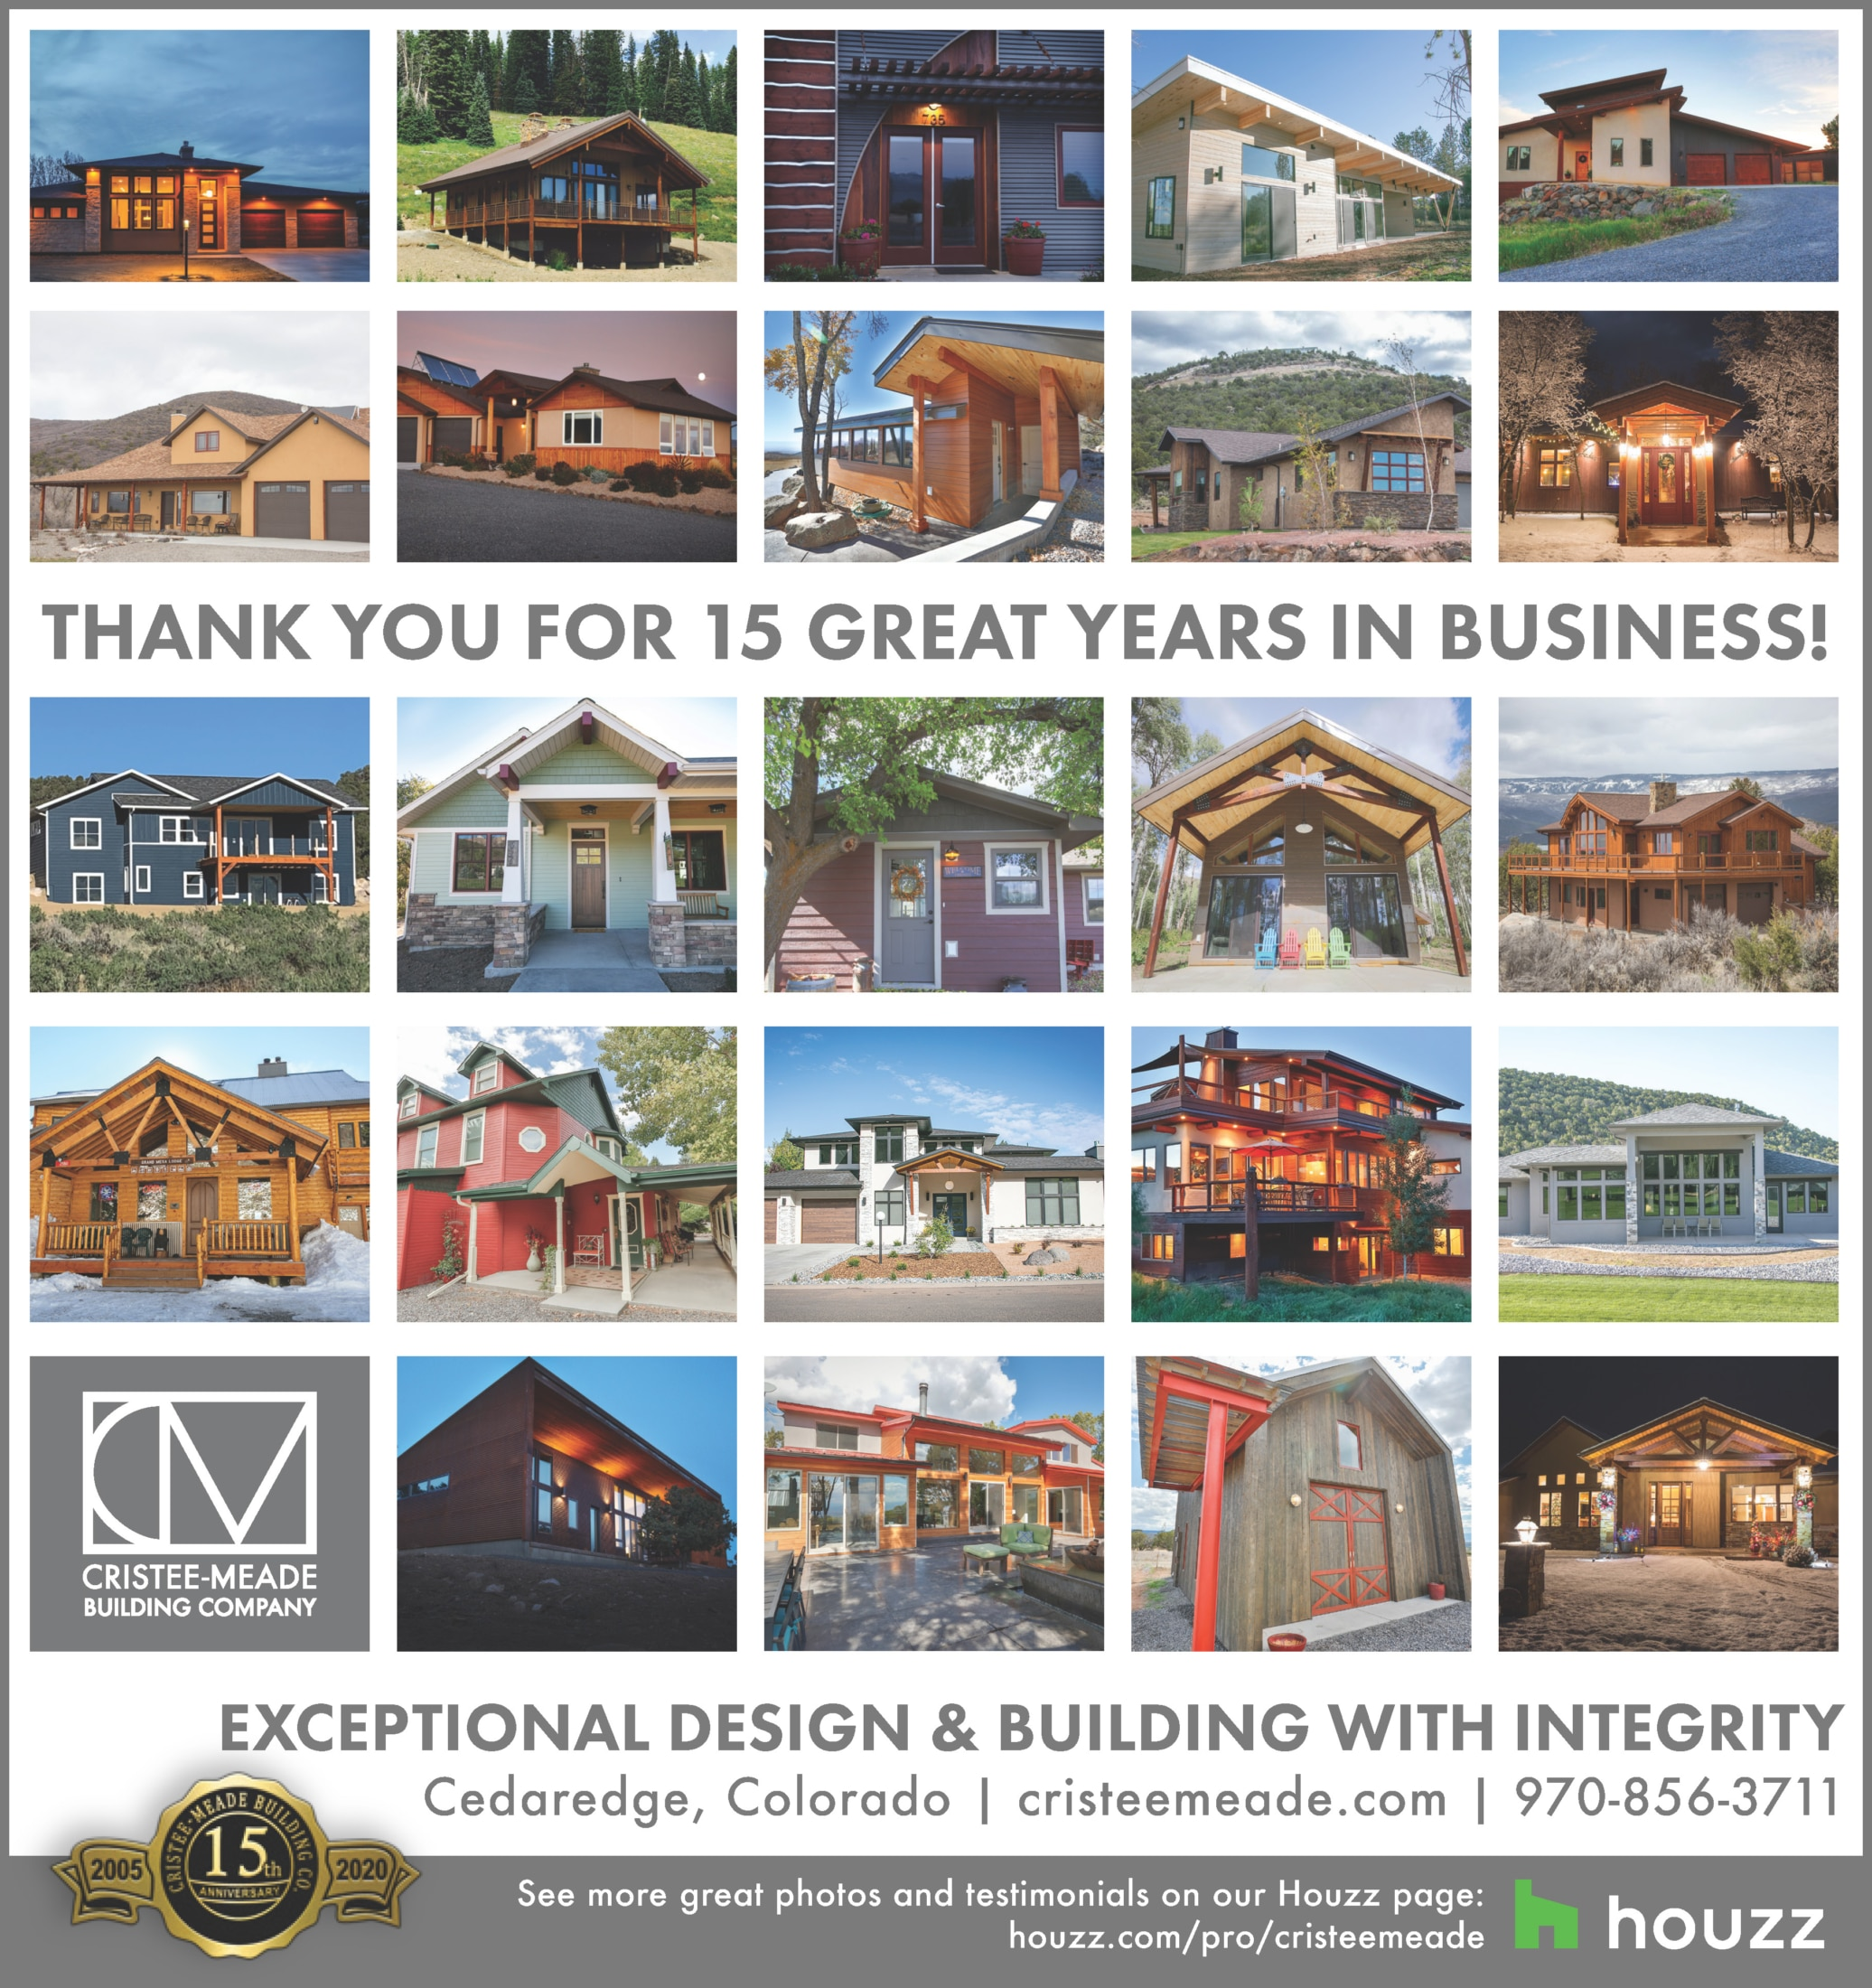 Cristee-Meade Building Company Celebrates 15th Anniversary